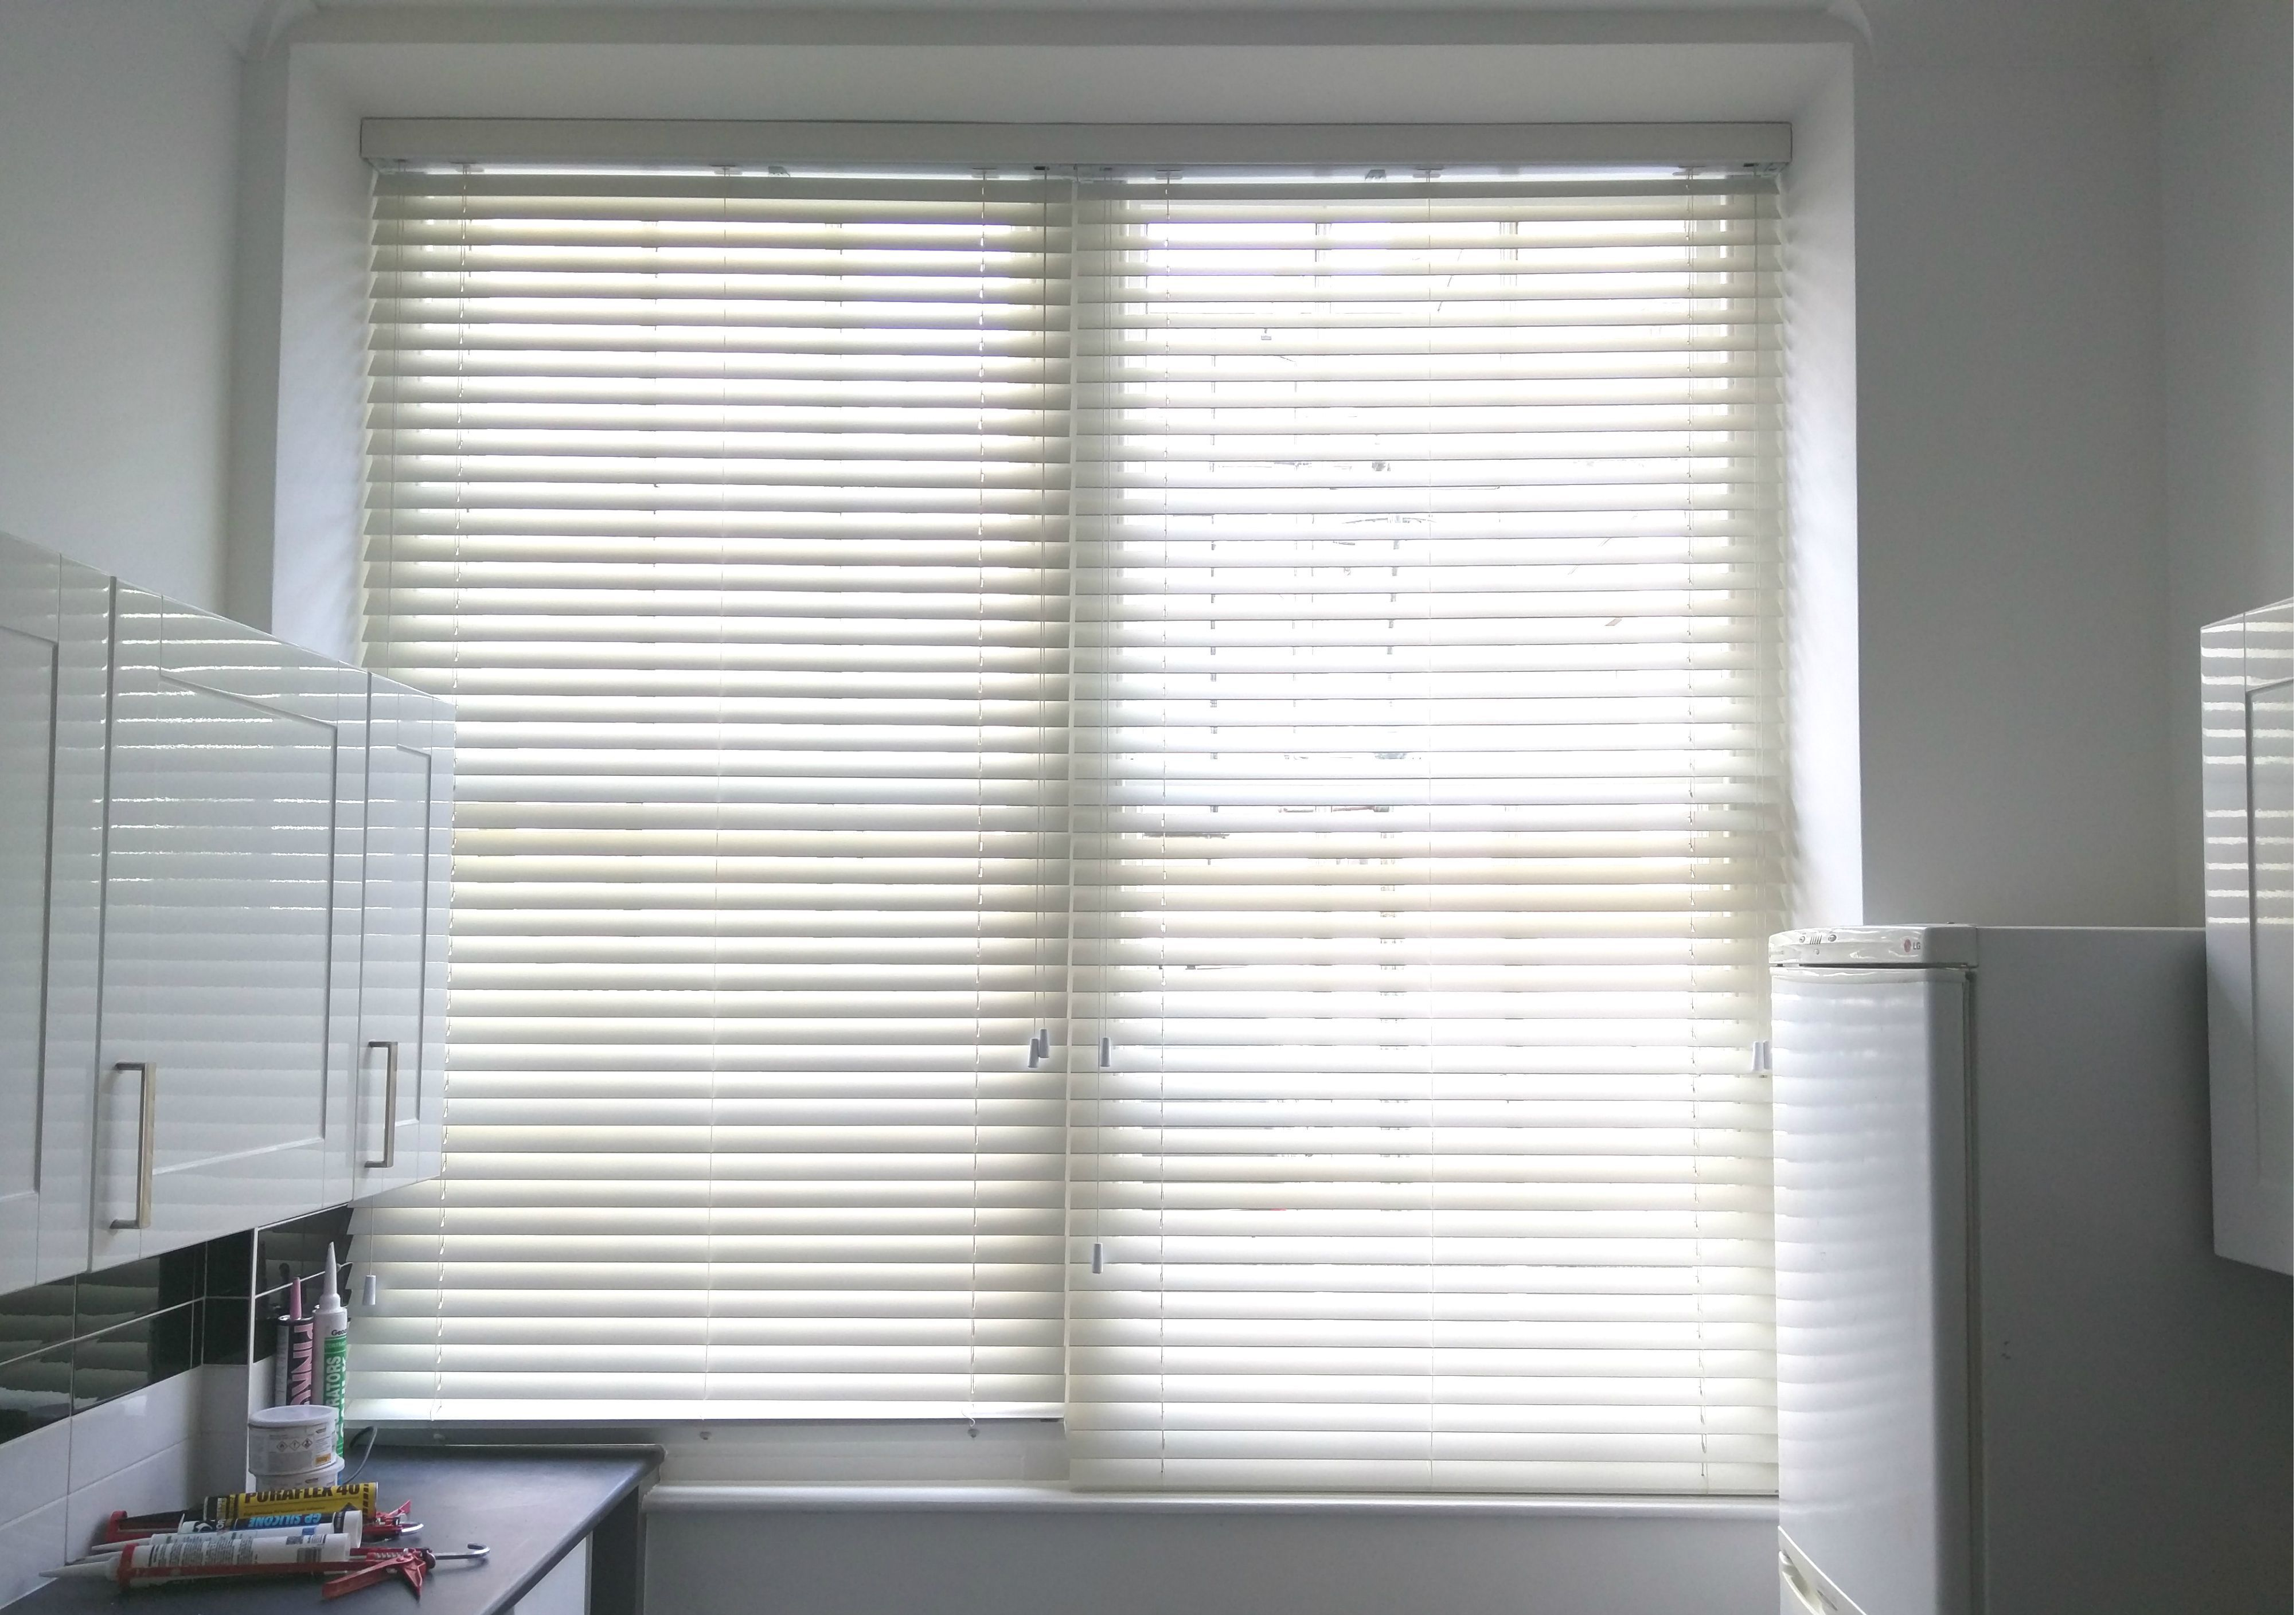 Stupefying Unique Ideas Blinds For Windows Sunroom Dark Blinds White Trim Privacy Blinds Interior Design In 2020 Living Room Blinds Fabric Blinds Curtains With Blinds